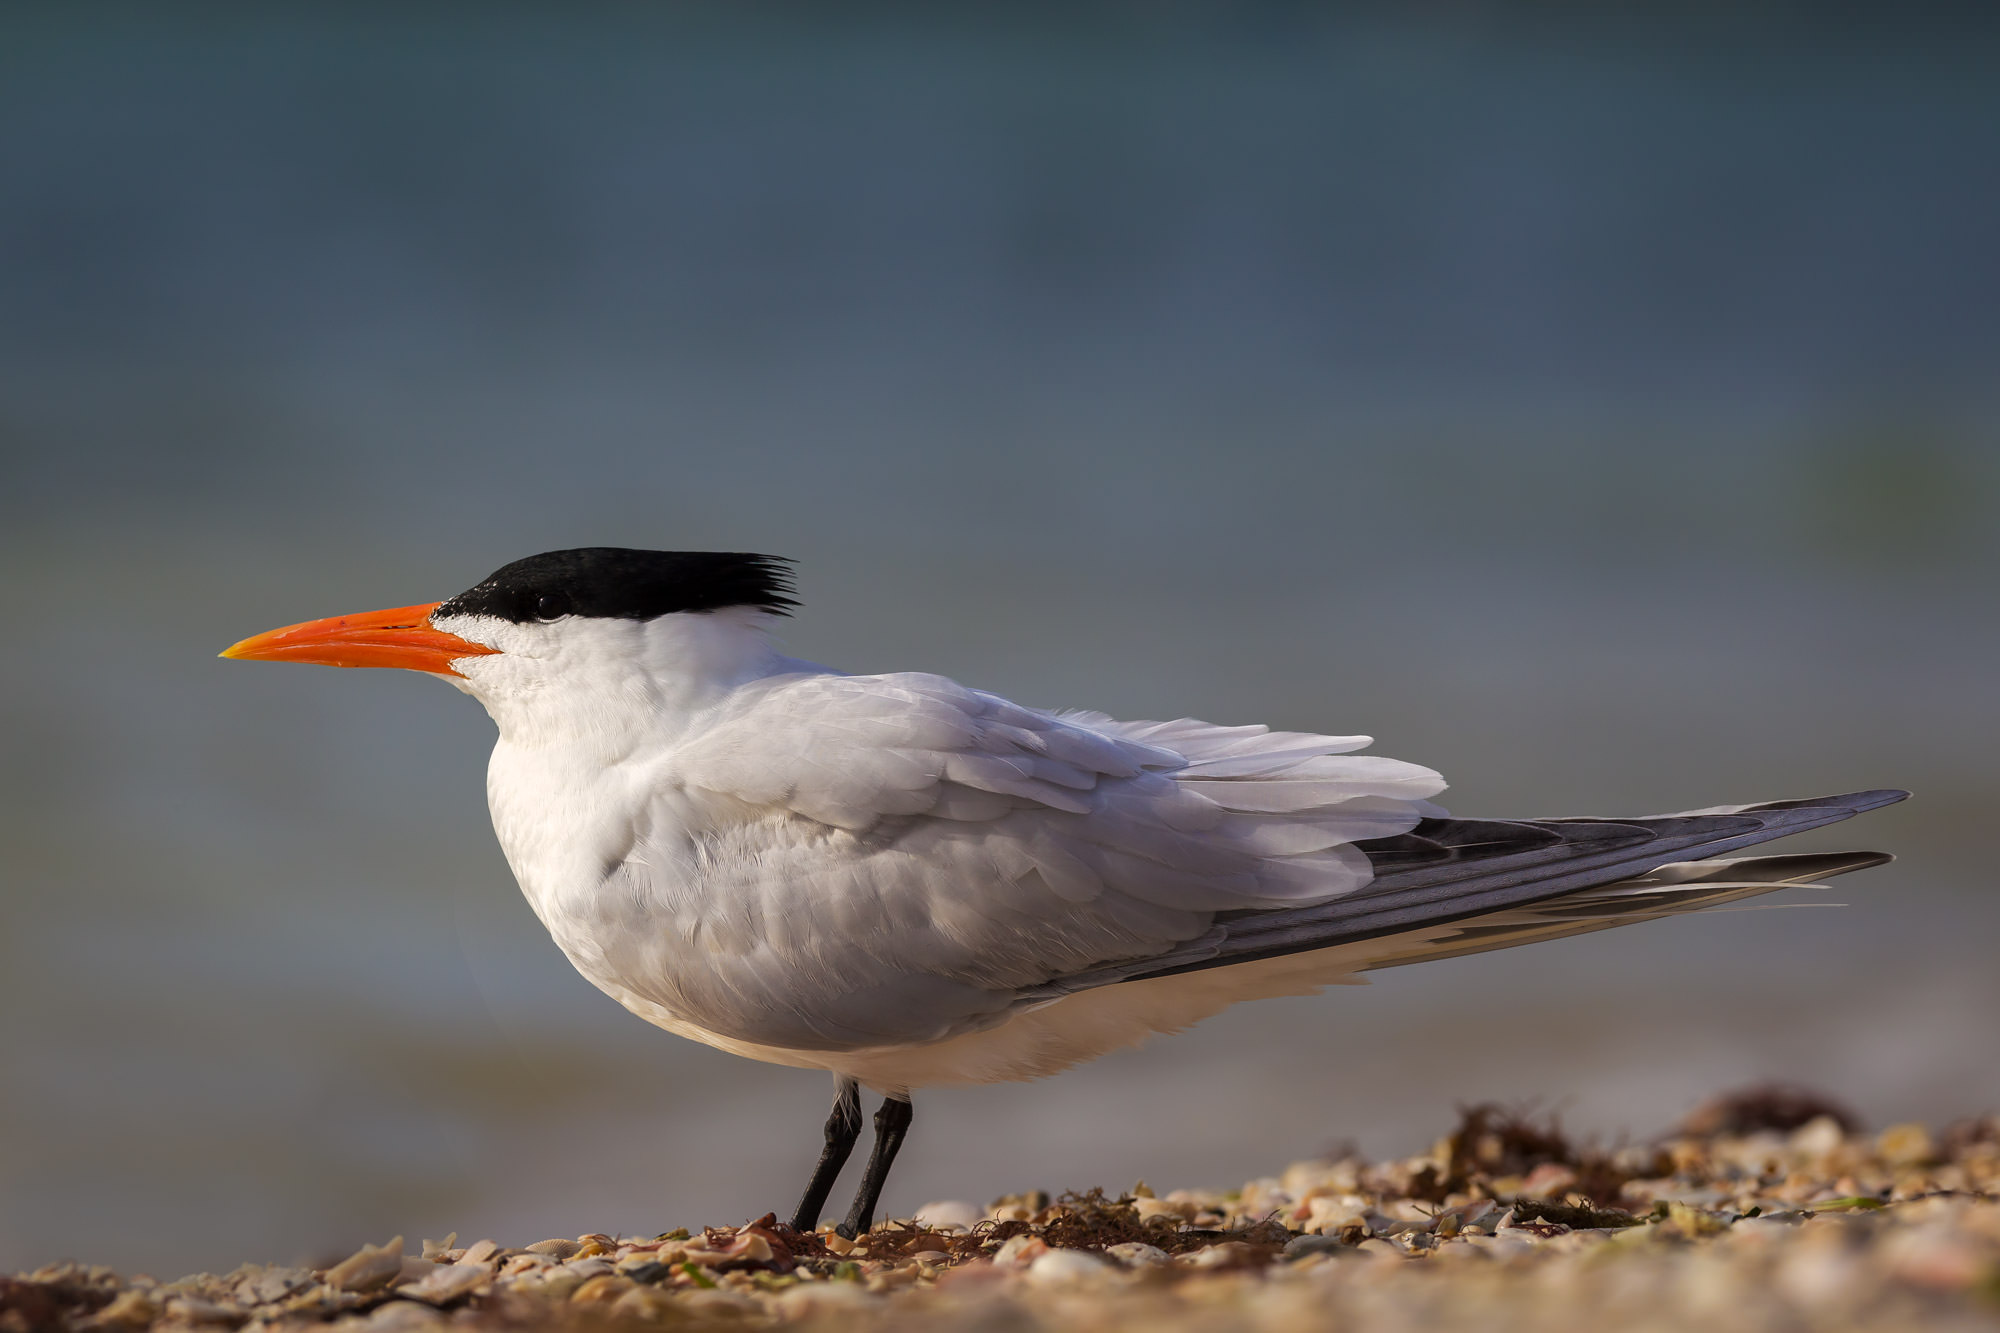 Royal Tern, Florida, beach, limited edition, photograph, photo